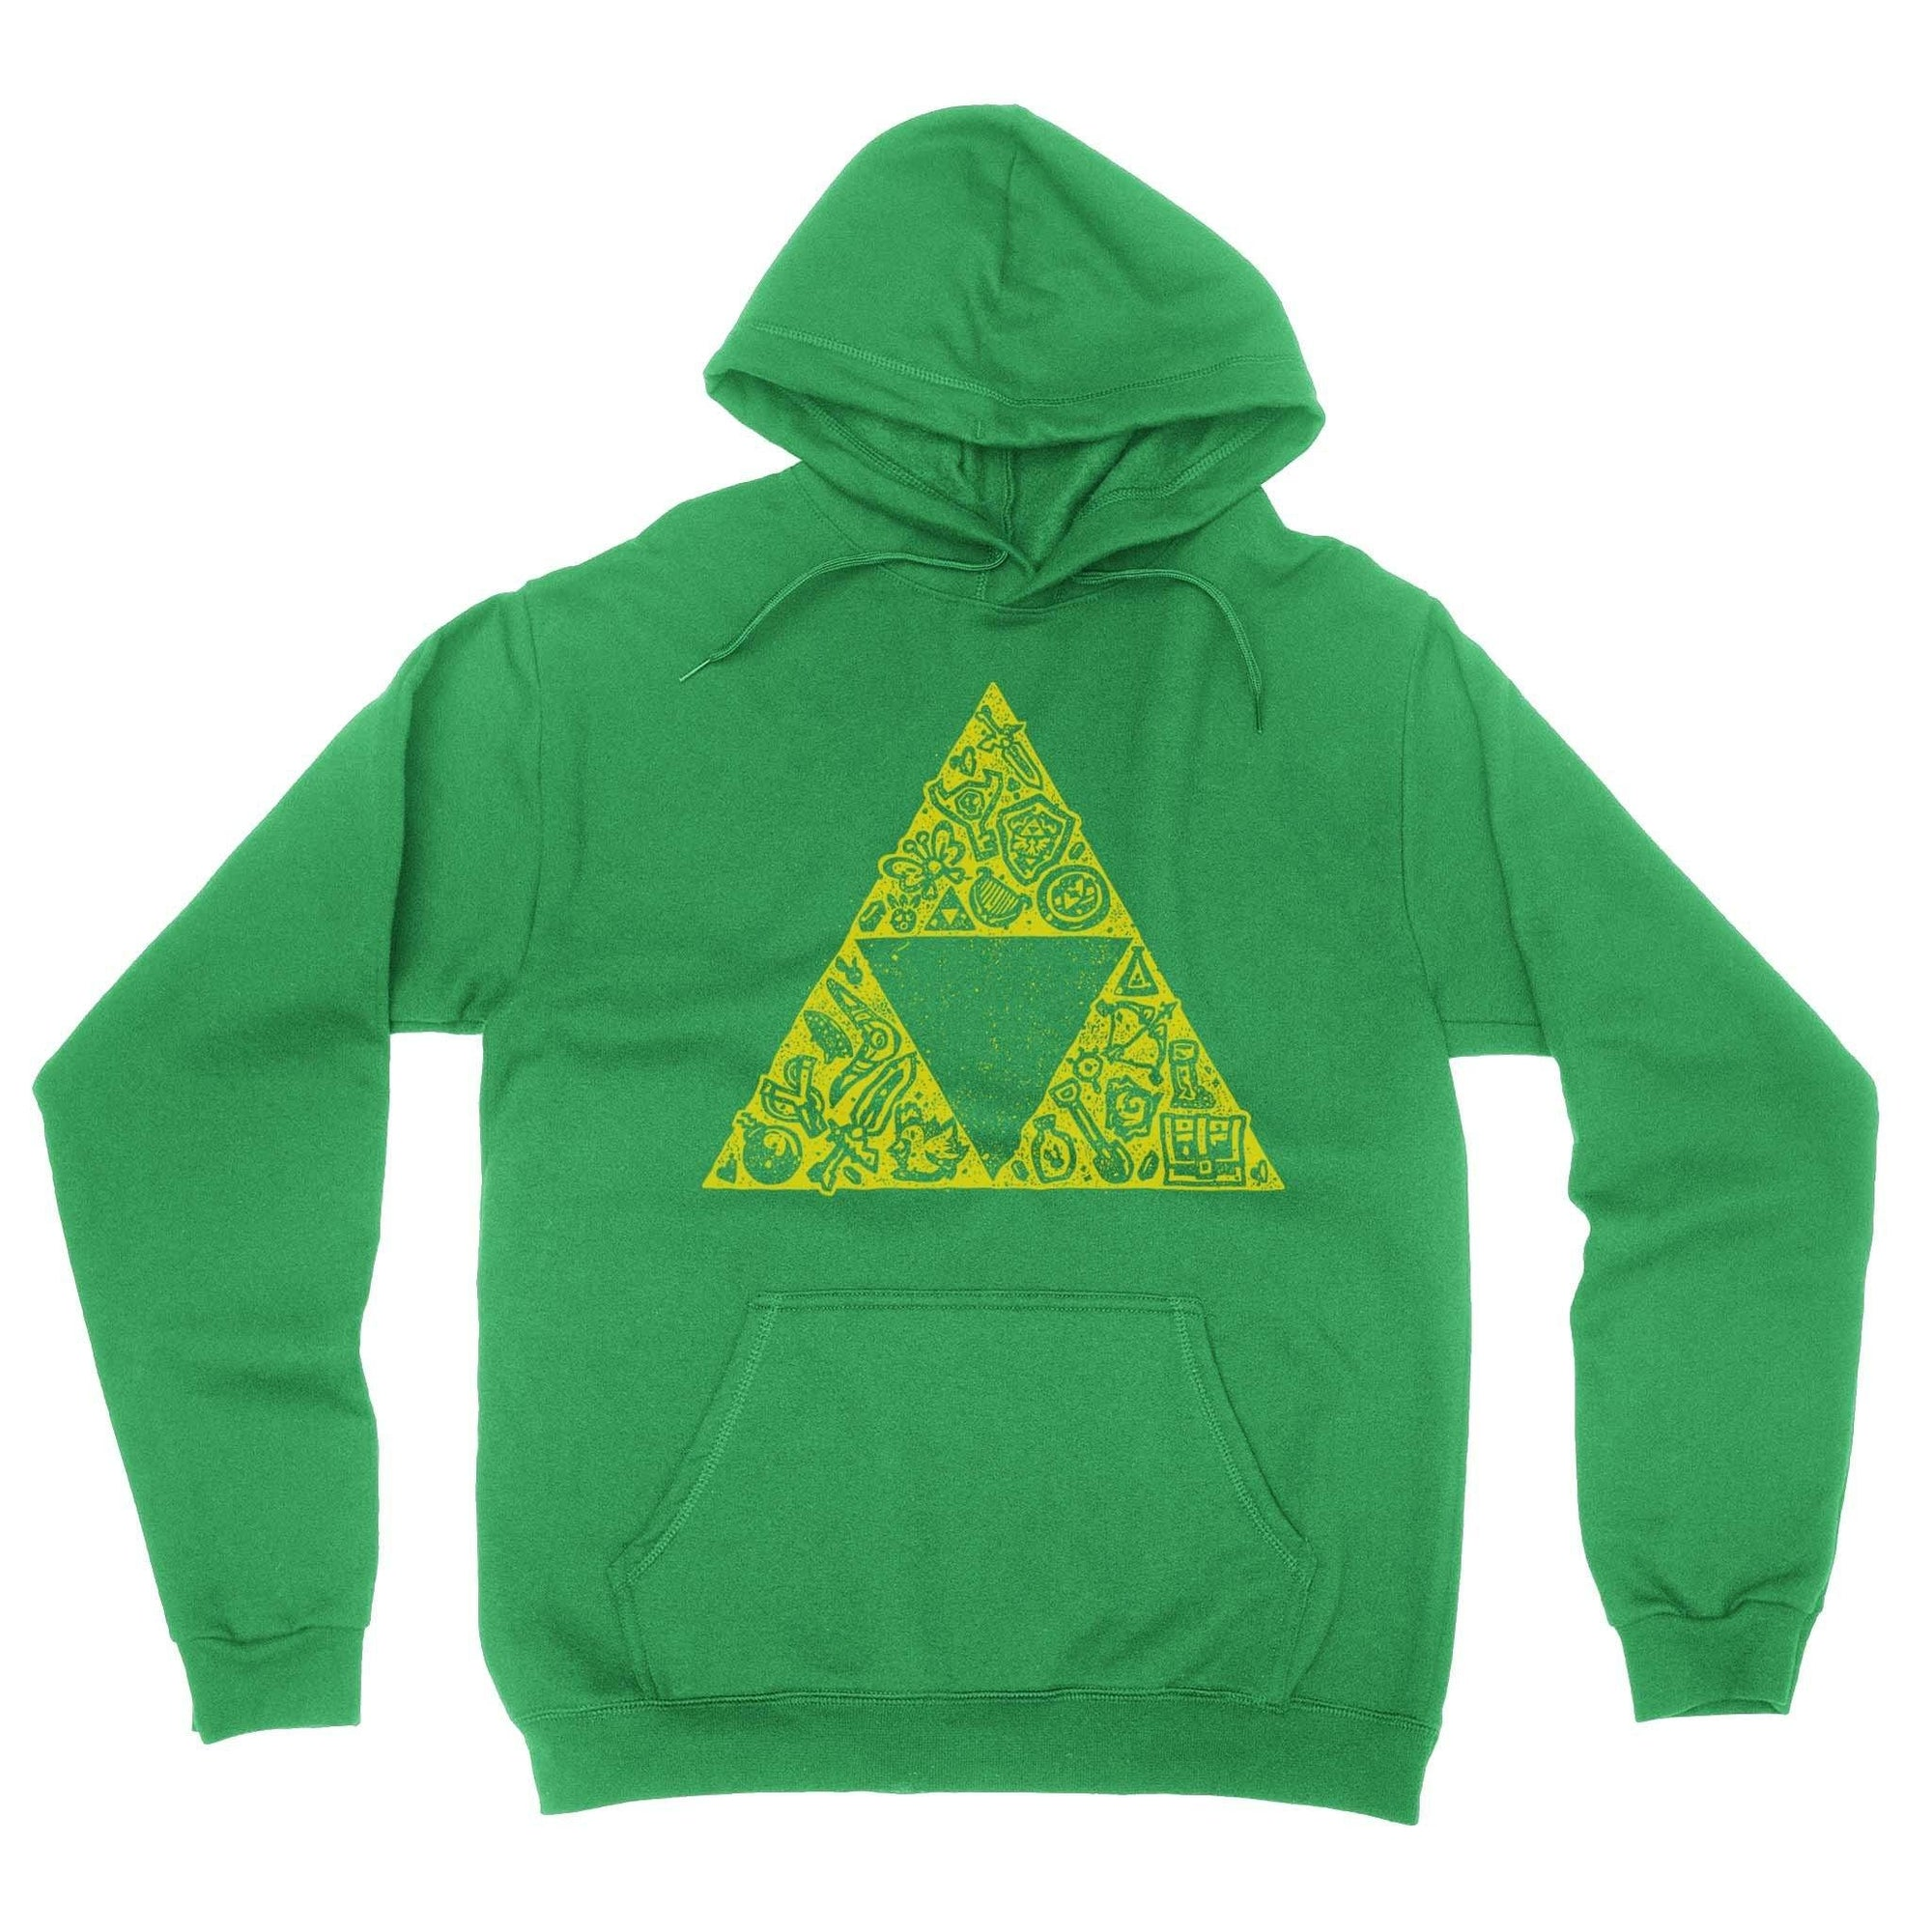 Hyrule Collector Hoodie-Hoodies-Shirtasaurus-S-Green-Shirtasaurus